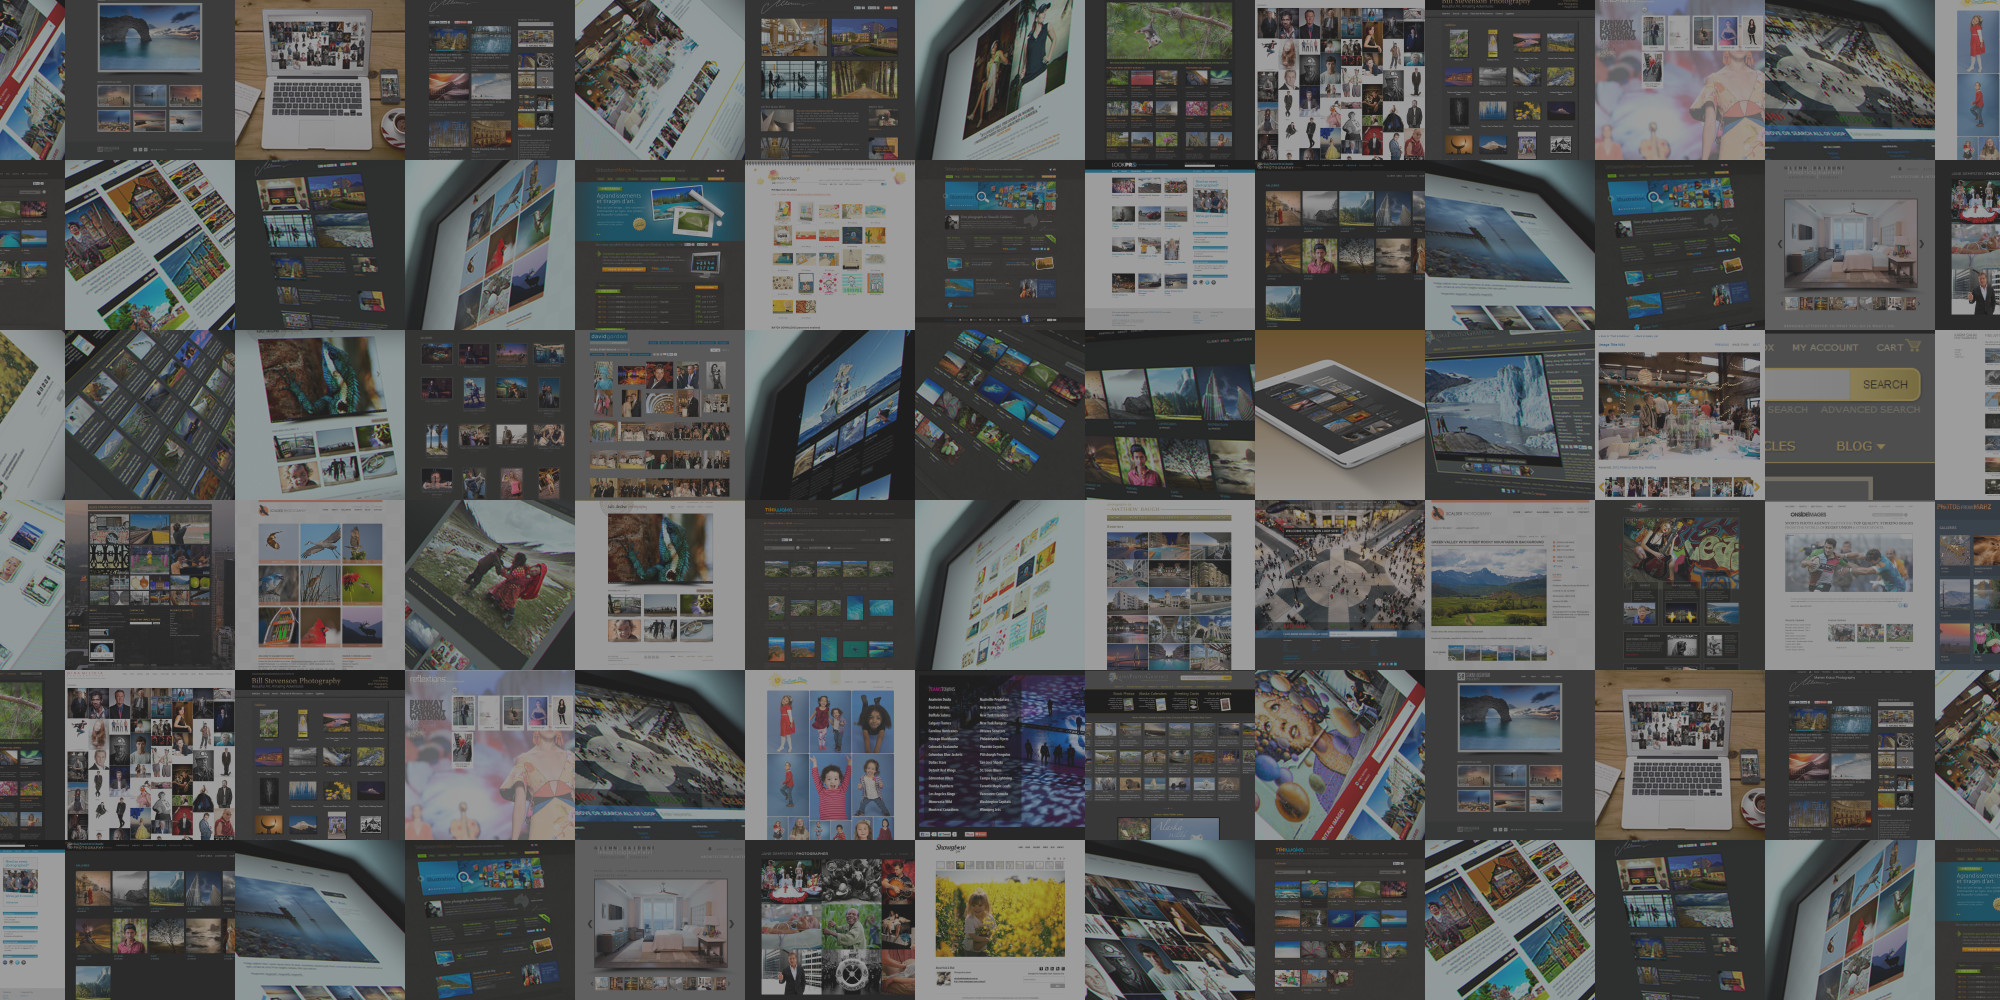 Having separate photography websites or merging them? - Featured Image